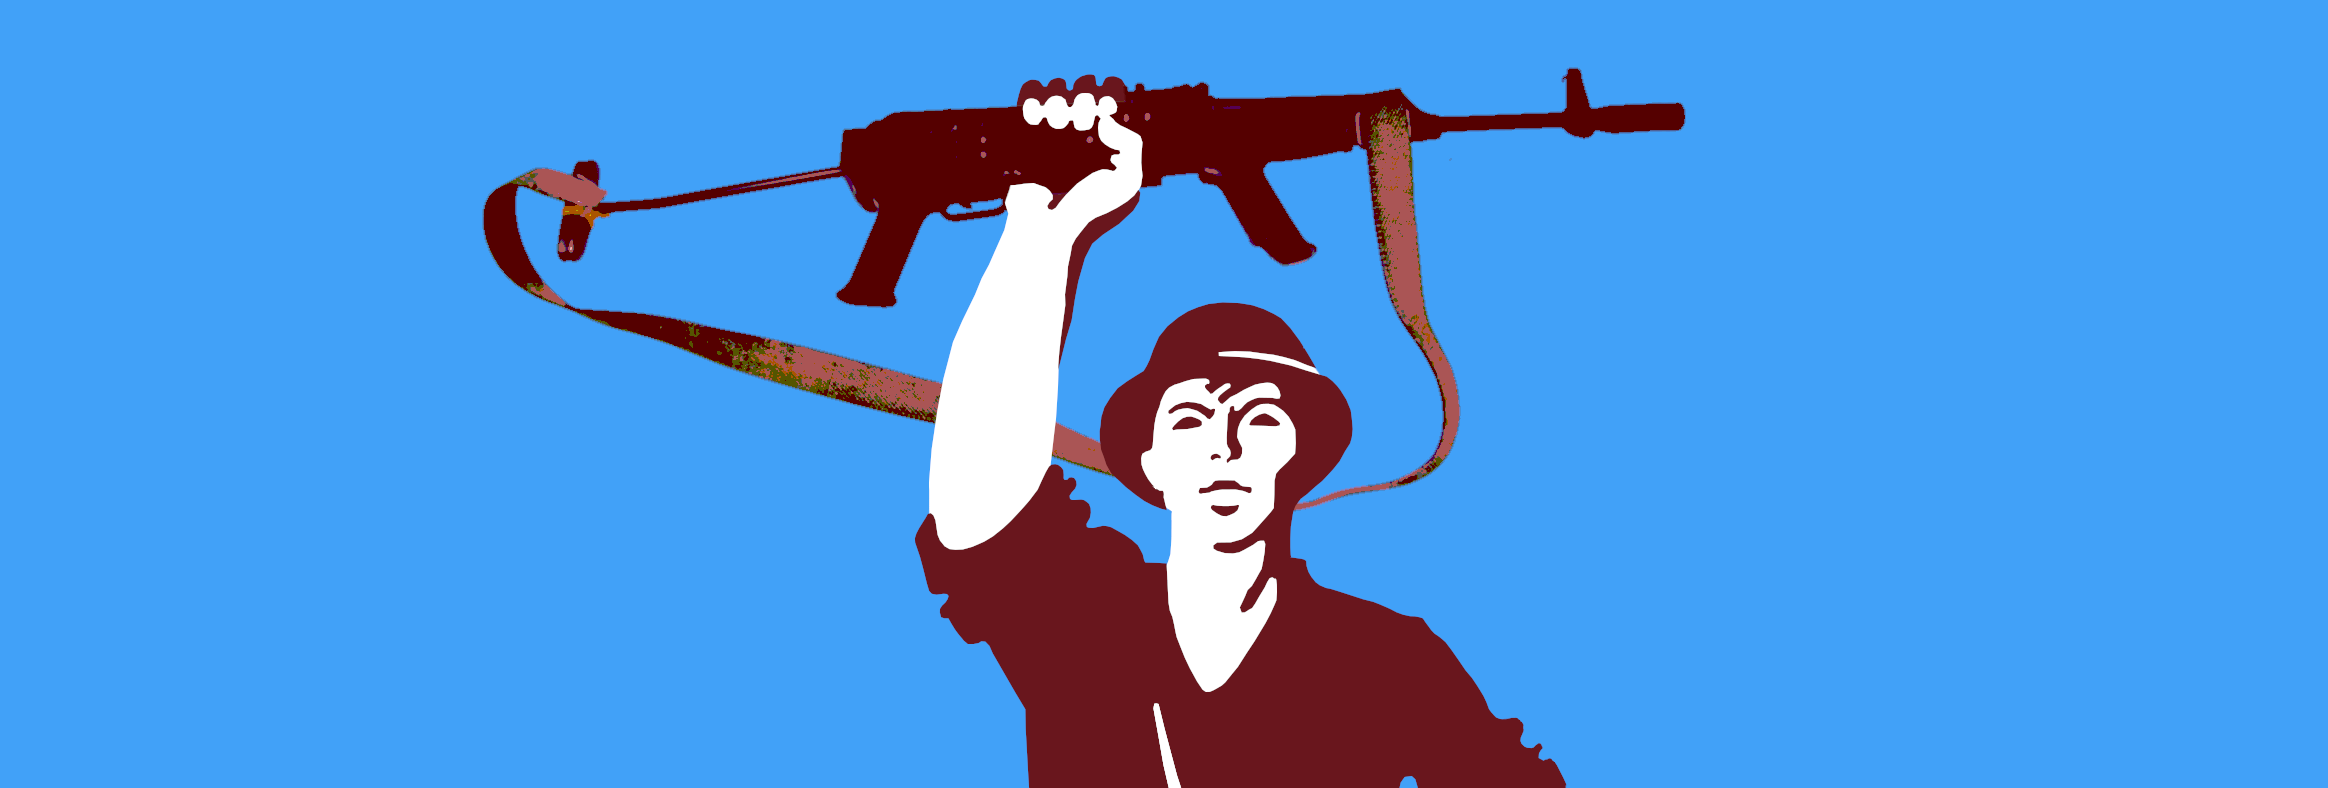 """Poster: """"Under no pretext should arms and ammunition be surrendered!"""""""